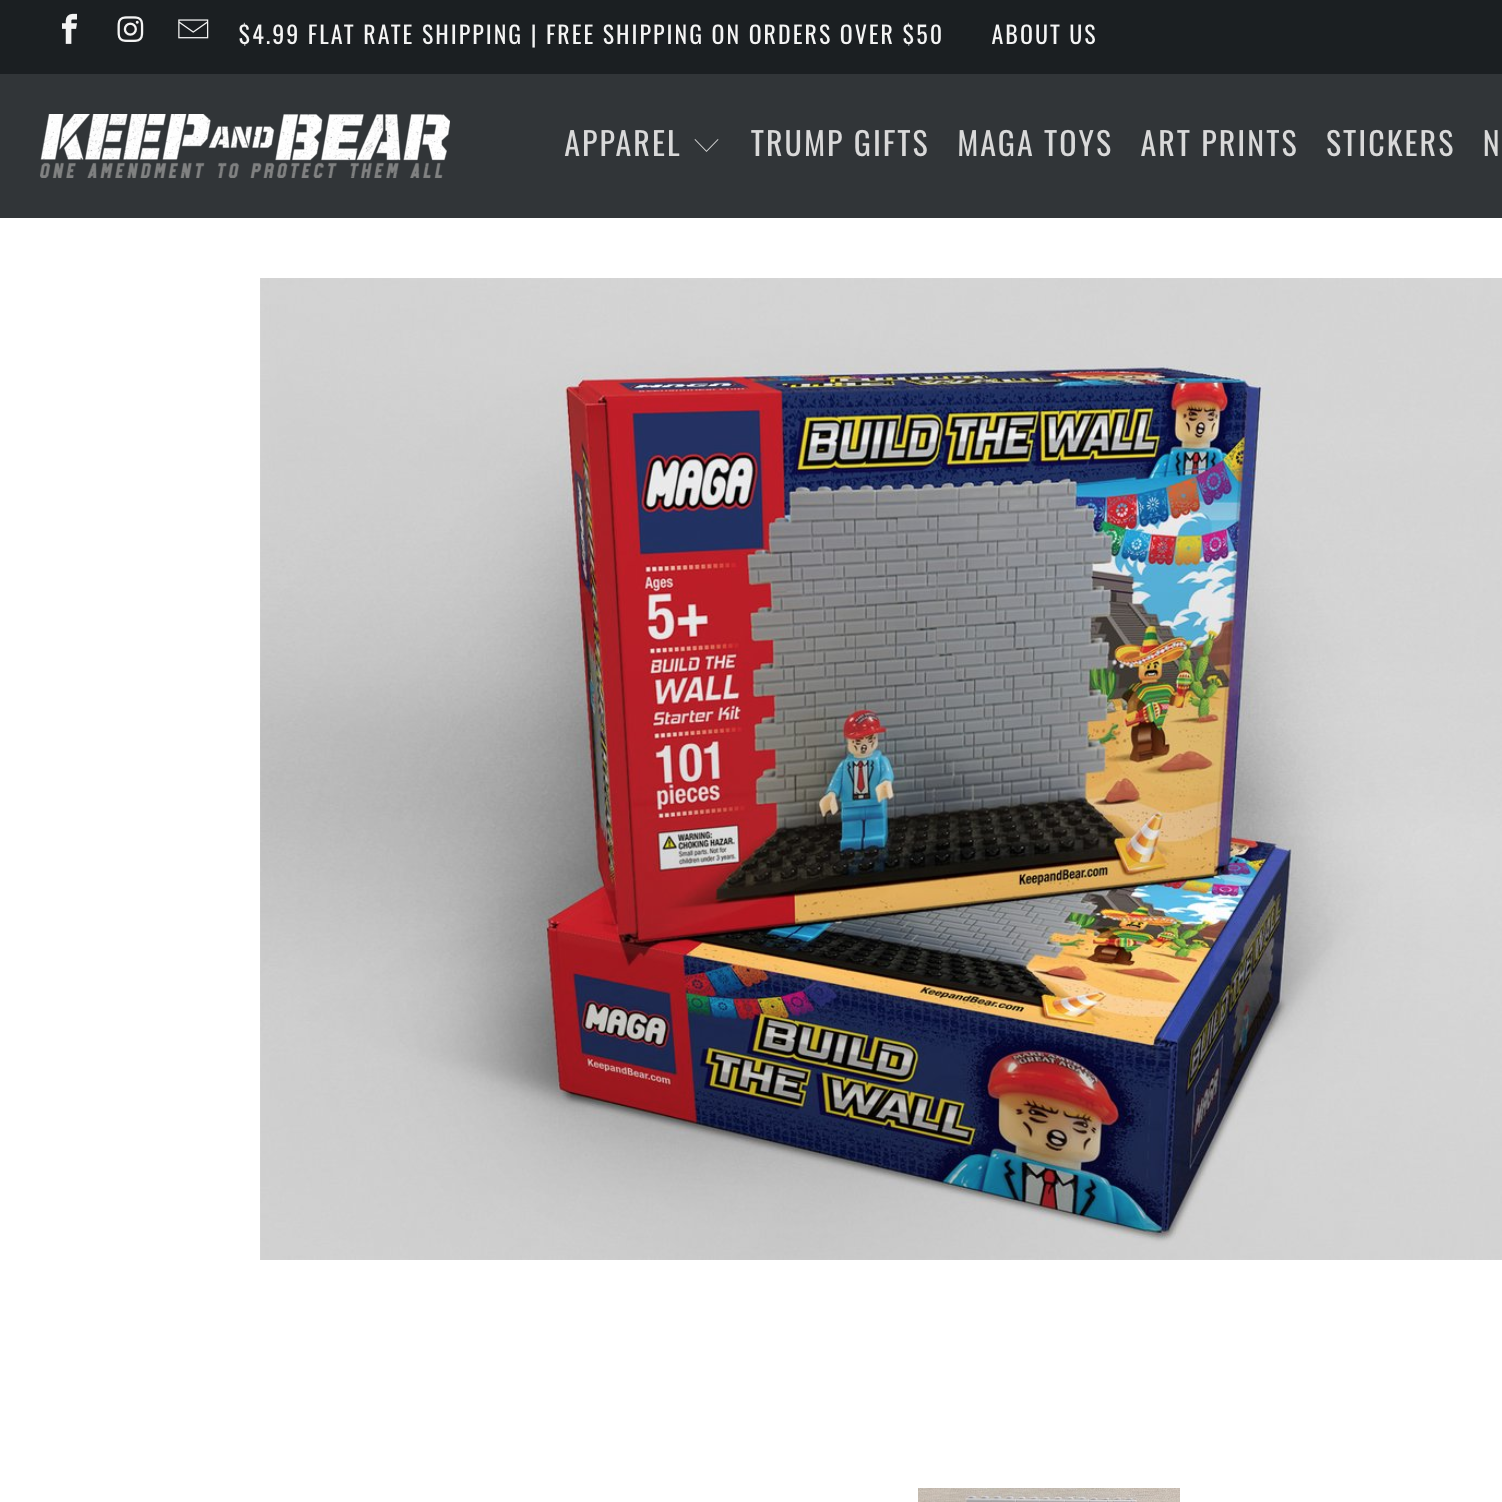 "Keepandbear.com, conservative retailer, will soon begin shipping a ""build the wall"" toy that would allow children or adults to use building blocks to construct a border wall."